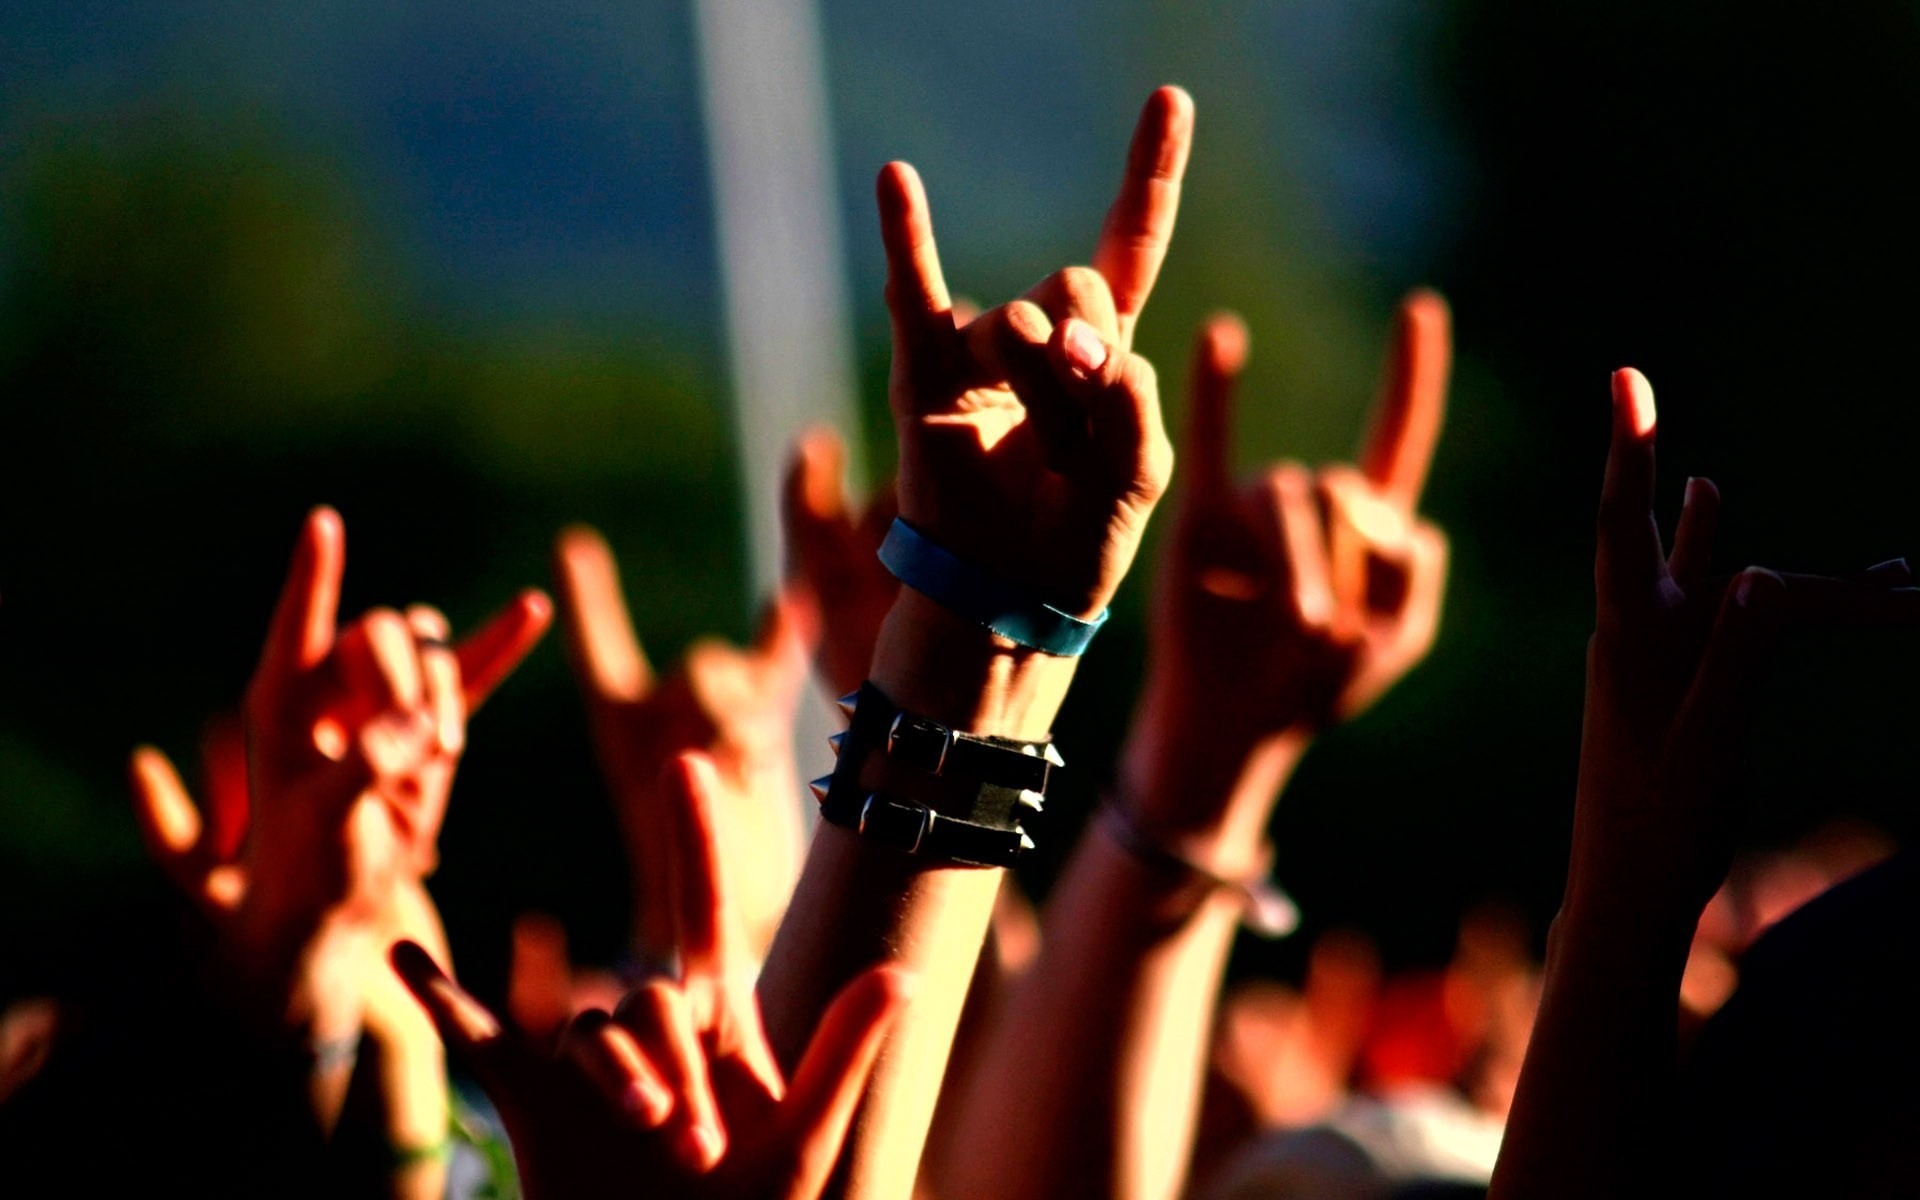 Music Concert Metal Horns Hand Signs Wide 69116 HD Wallpaper Res 1920x1200